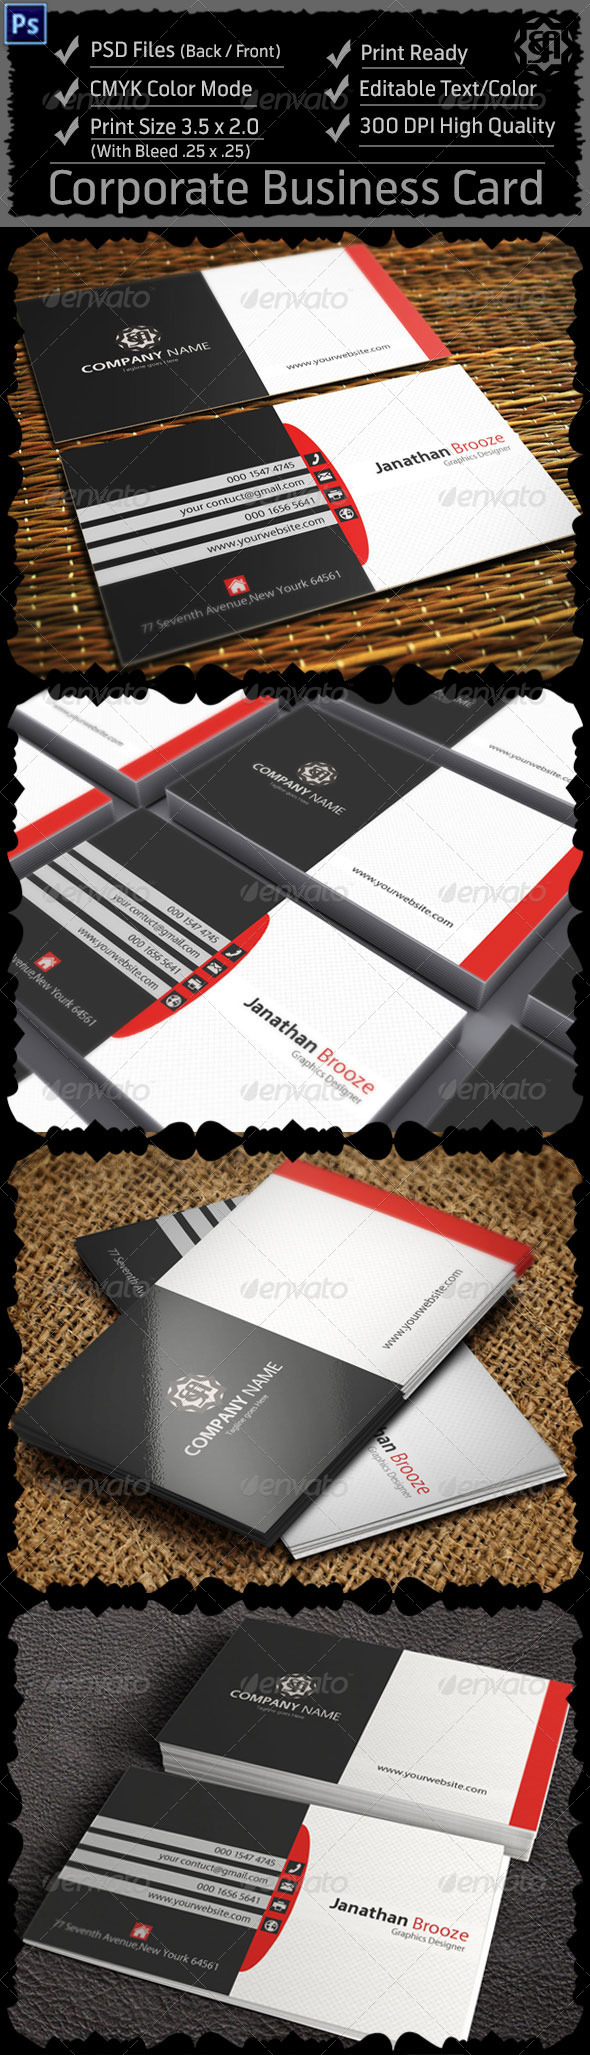 GraphicRiver Corporate Business Card 8324806